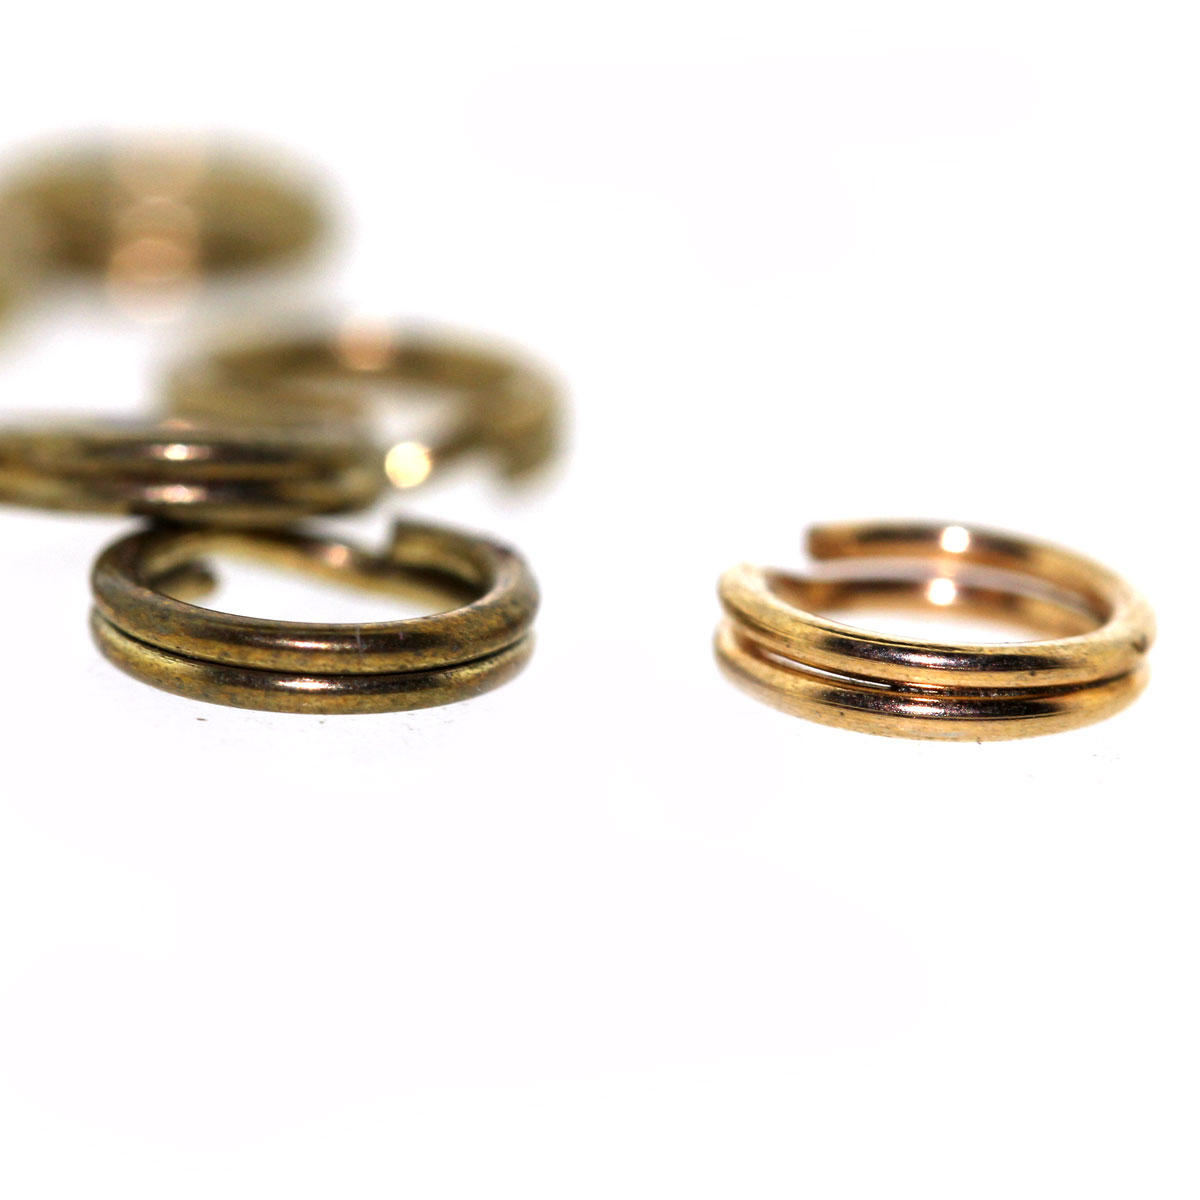 Antique Gold or Brass Split Rings